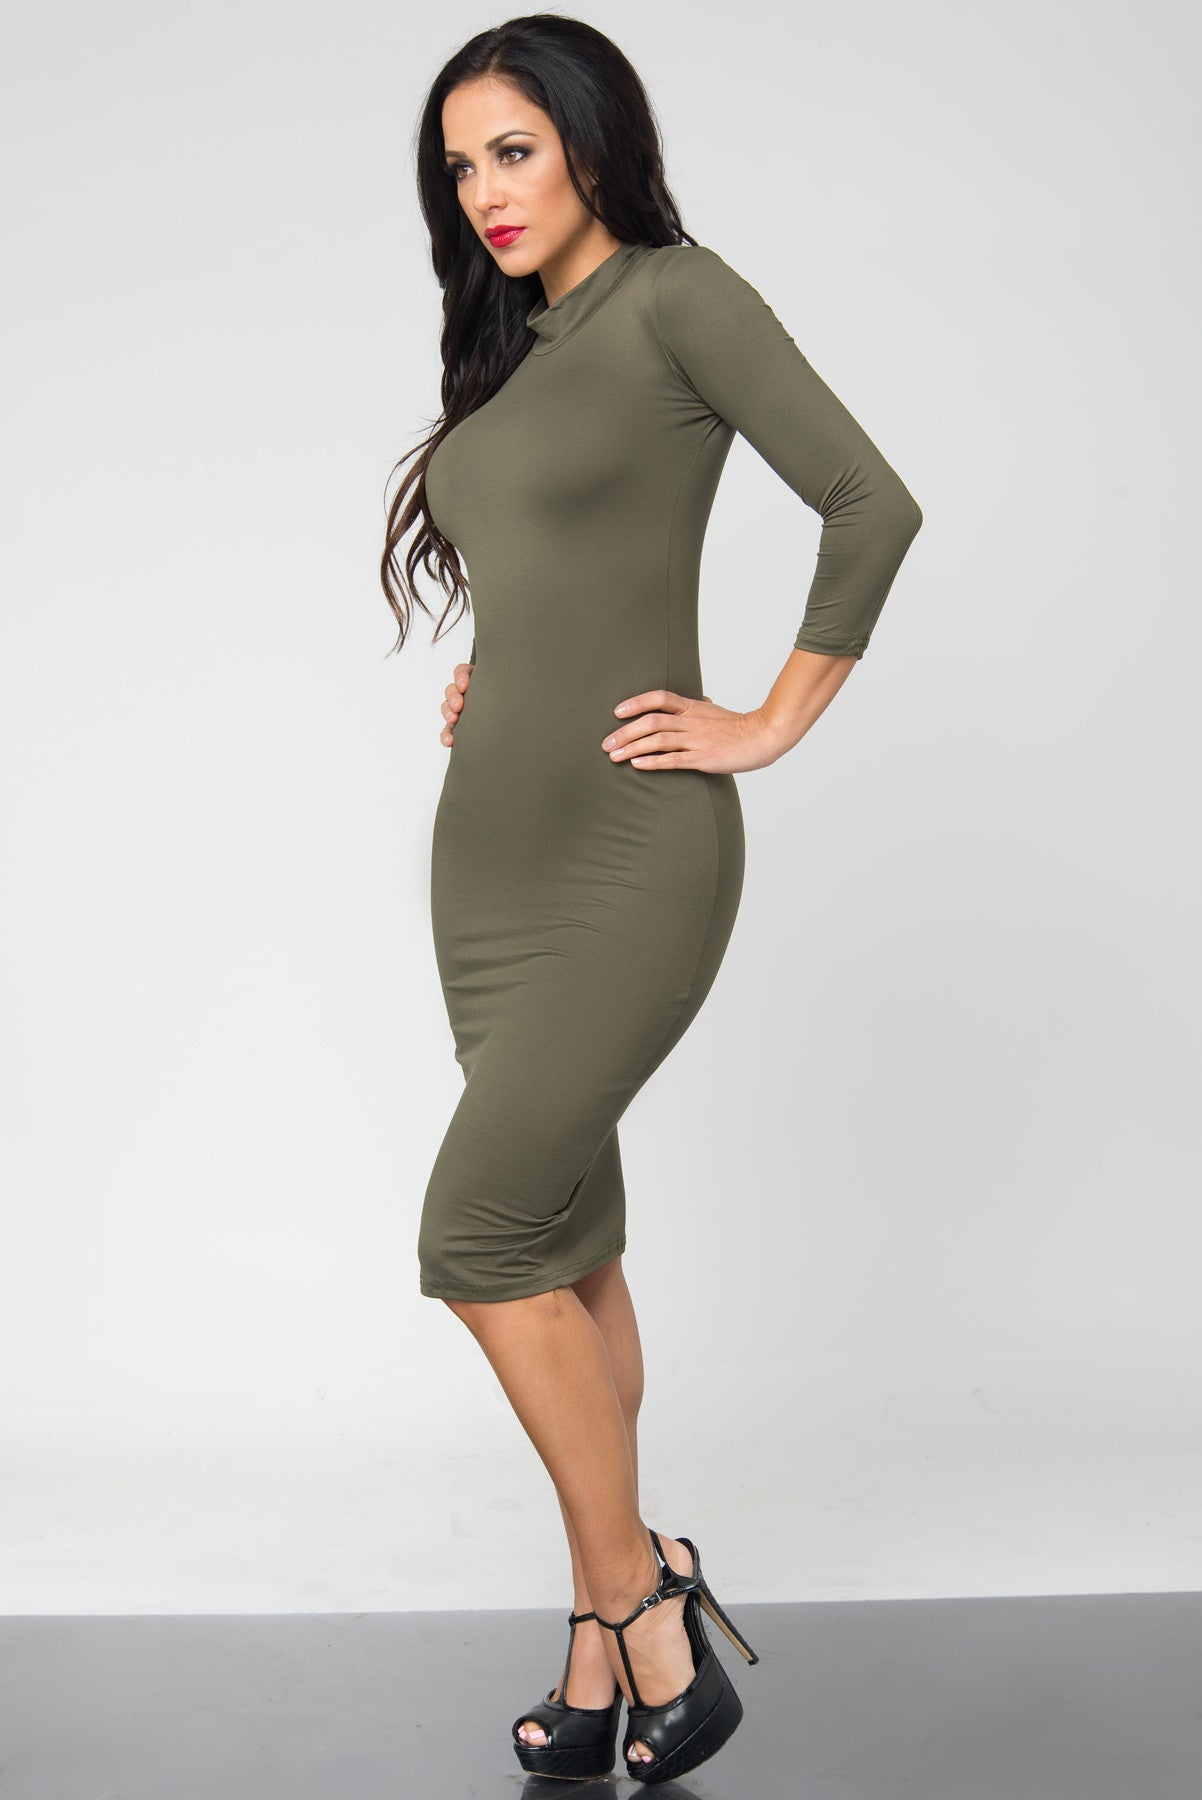 Marsha Olive Long Sleeve Dress - Fashion Effect Store  - 2